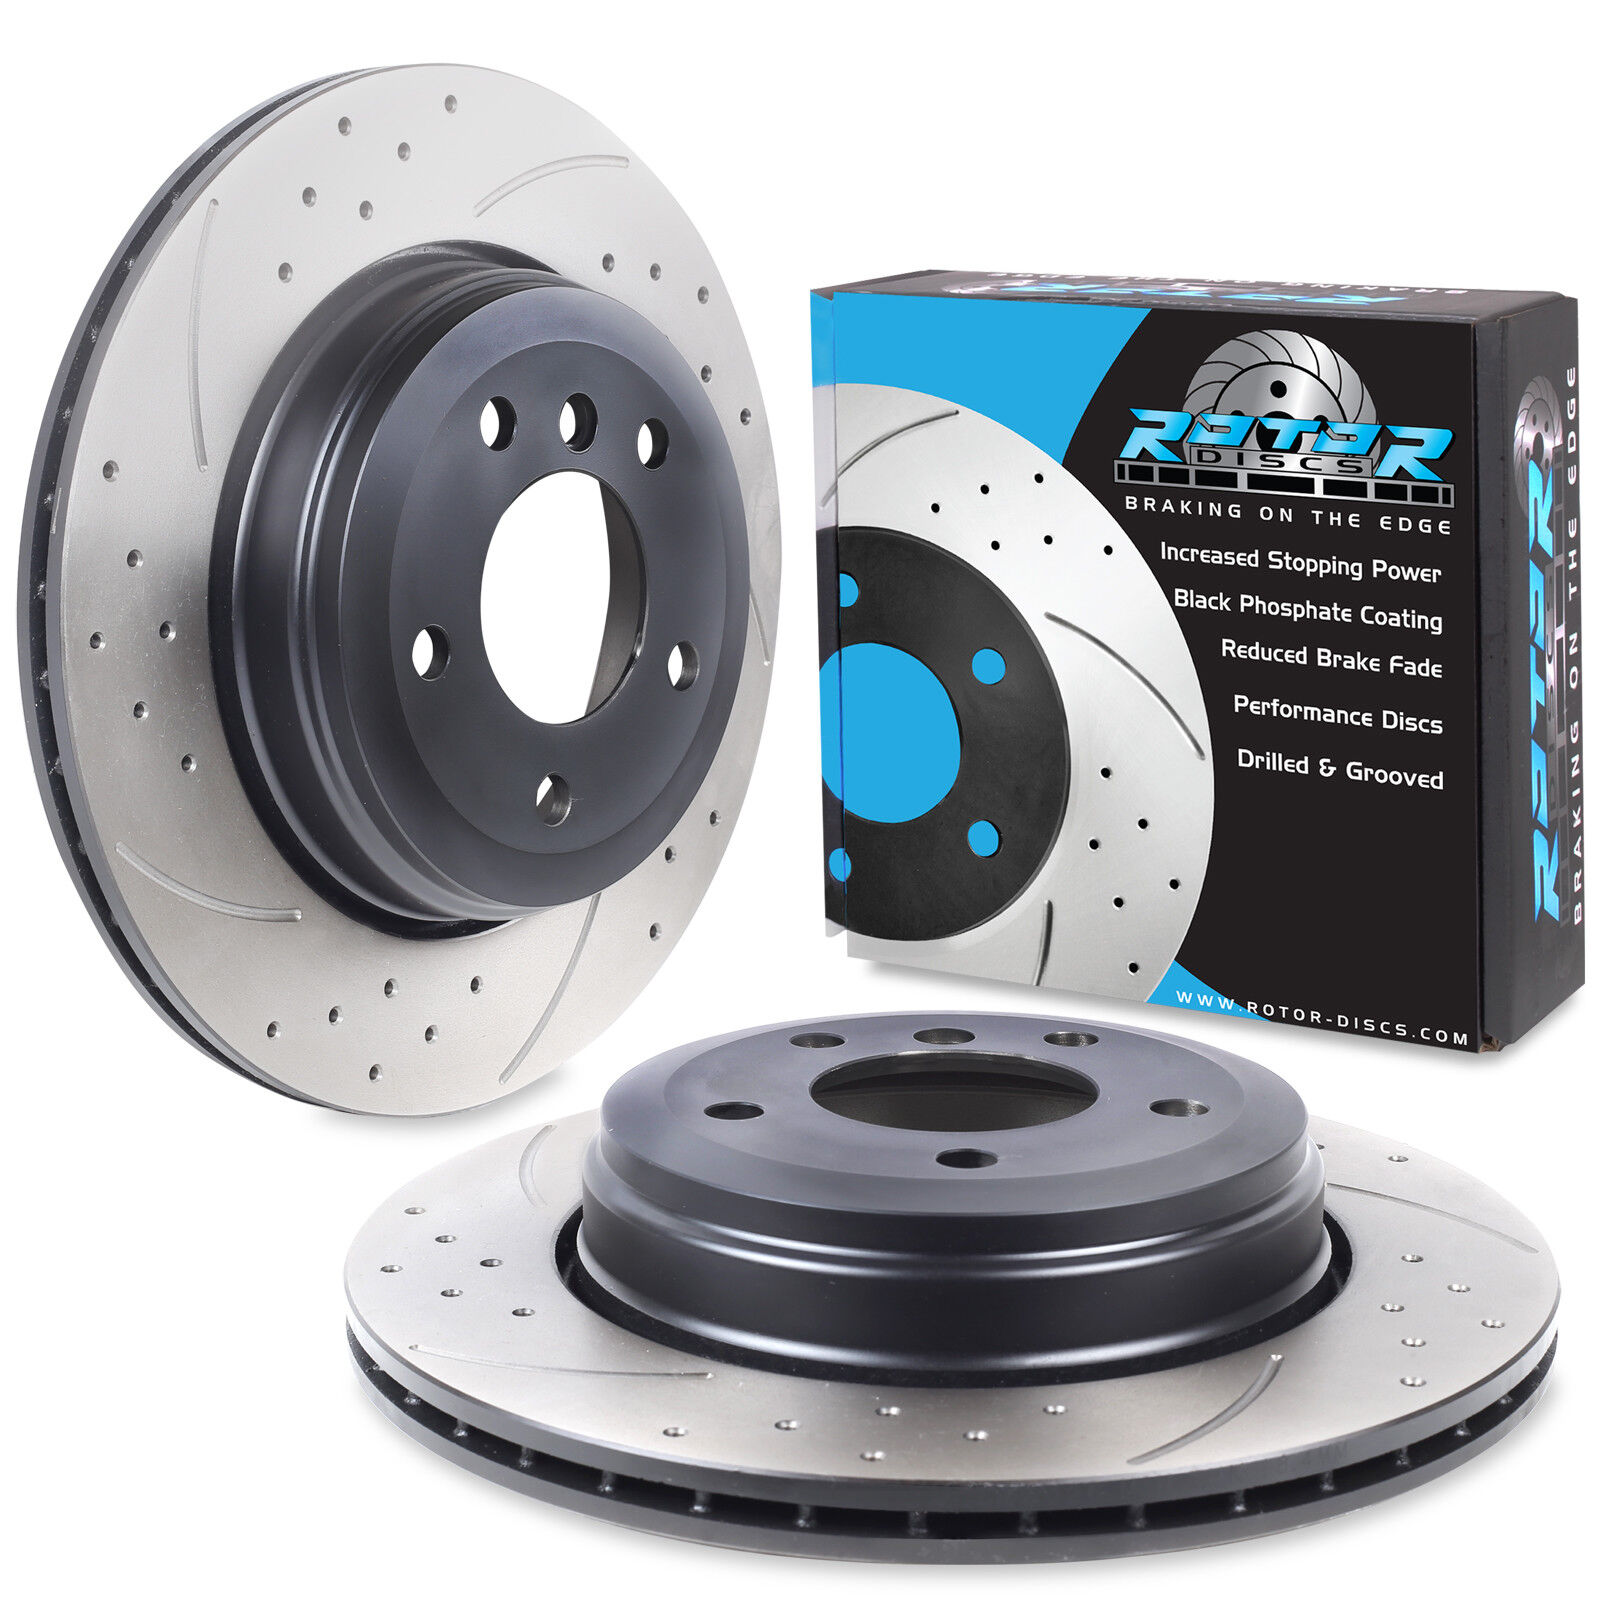 525d 03//04 BMW 5 Saloon E60 Rear Brake Discs Drilled Grooved Gold Edition